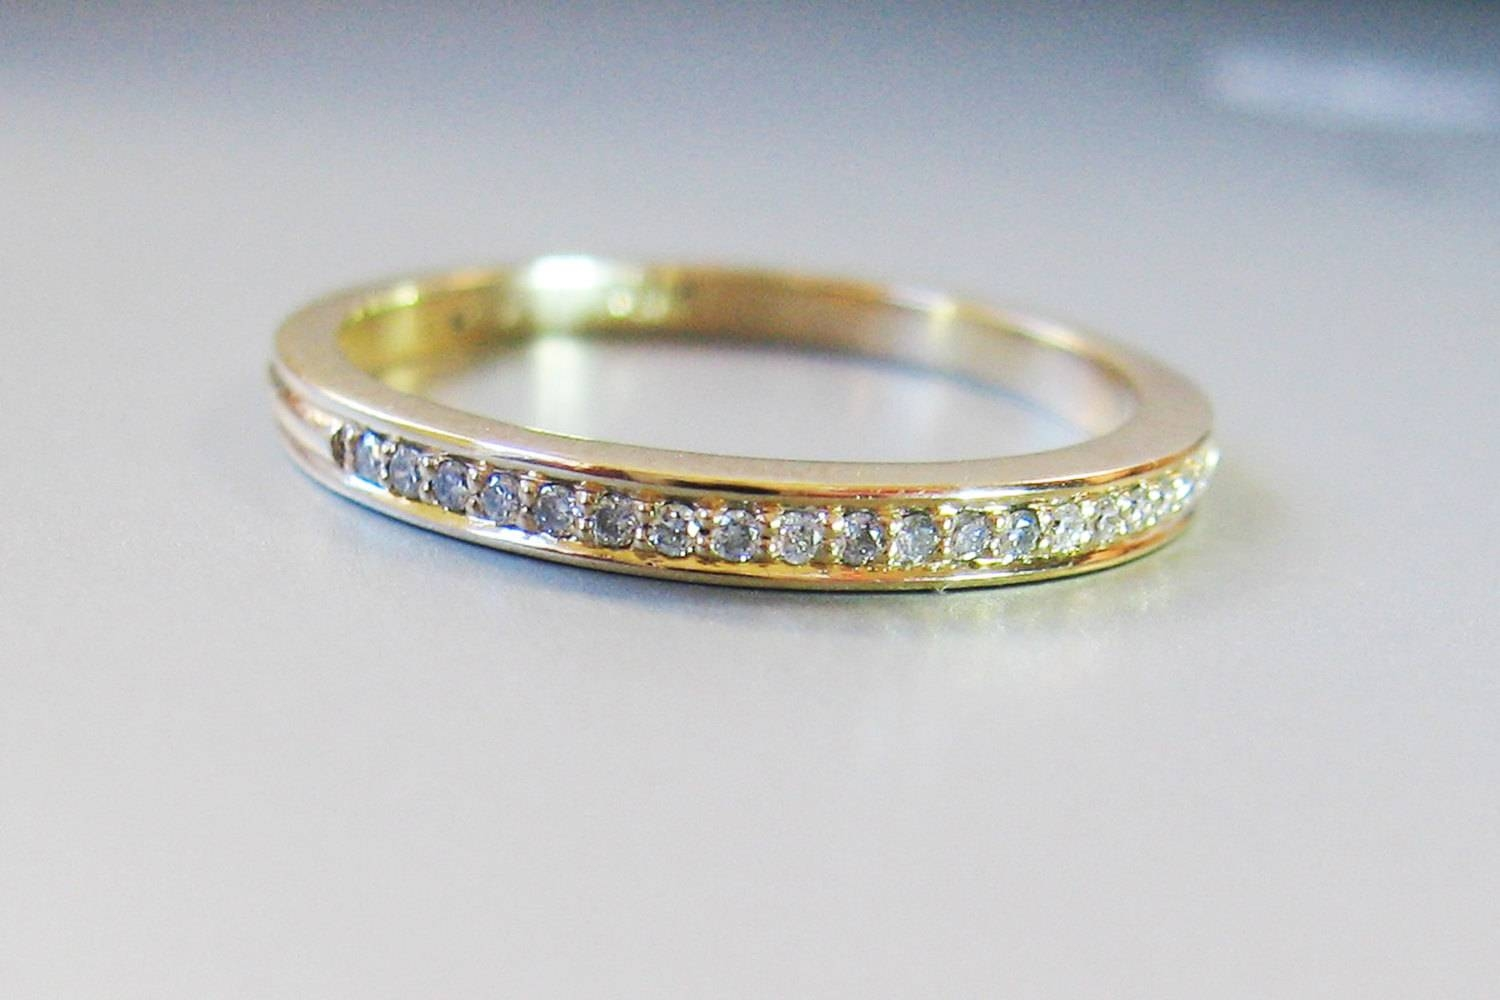 Micro Pave Diamond Eternity Ring 2Mm In 14K Gold, Handmade Diamond Intended For Small Diamond Wedding Bands (View 7 of 15)